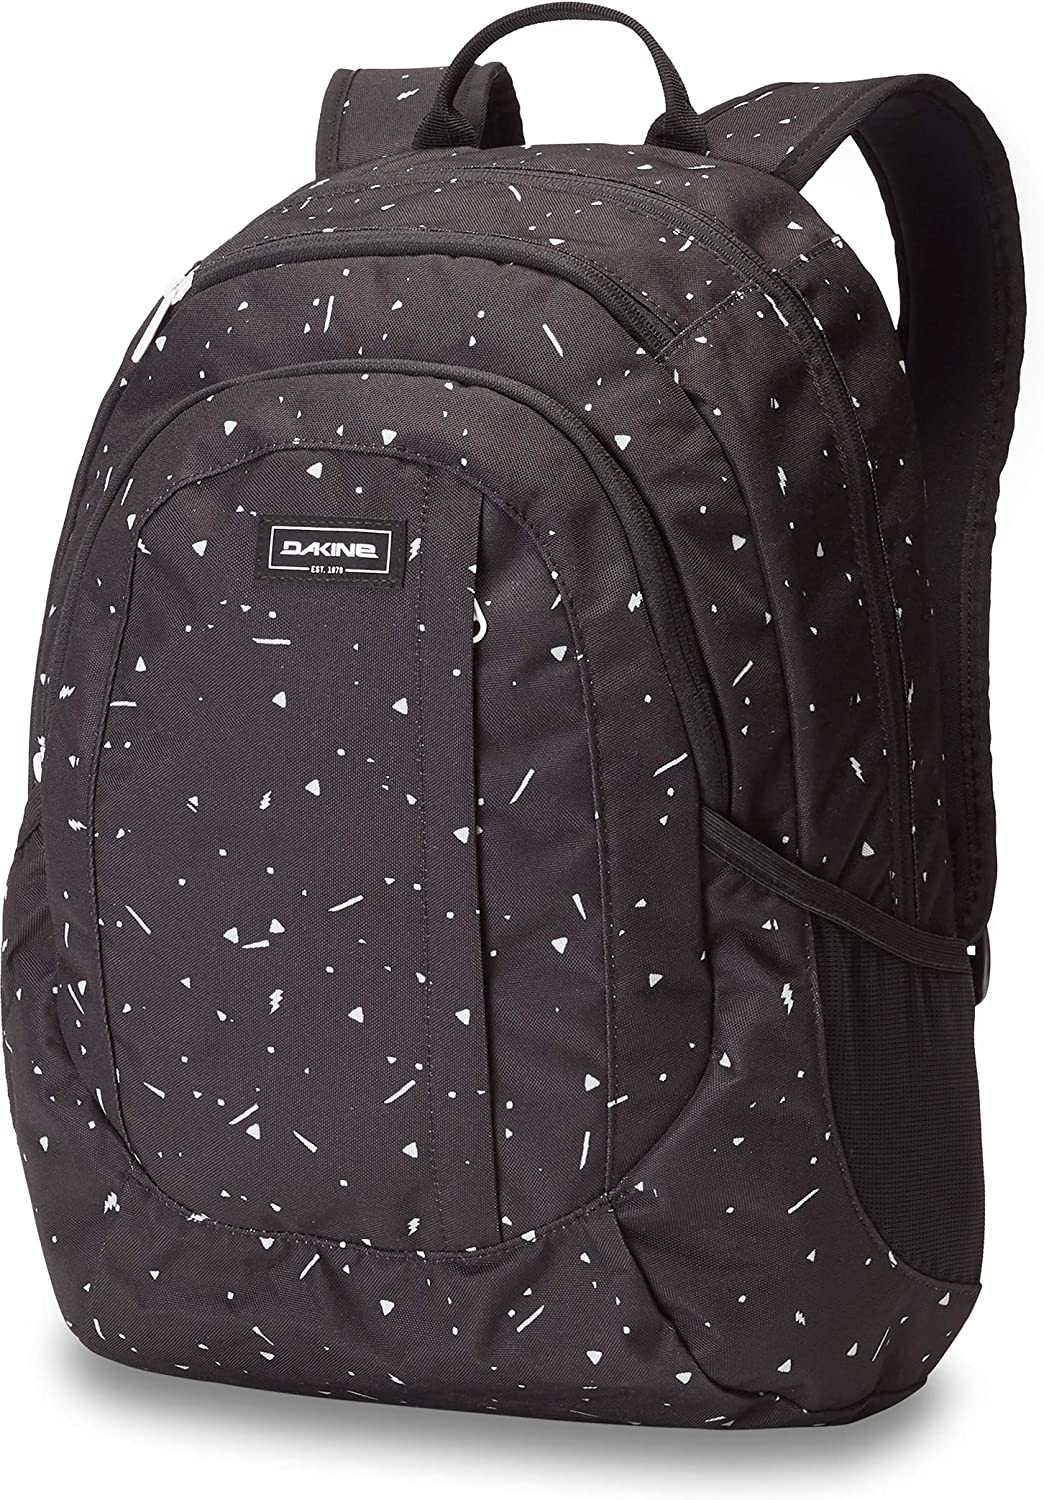 Dakine Garden 20l Backpack